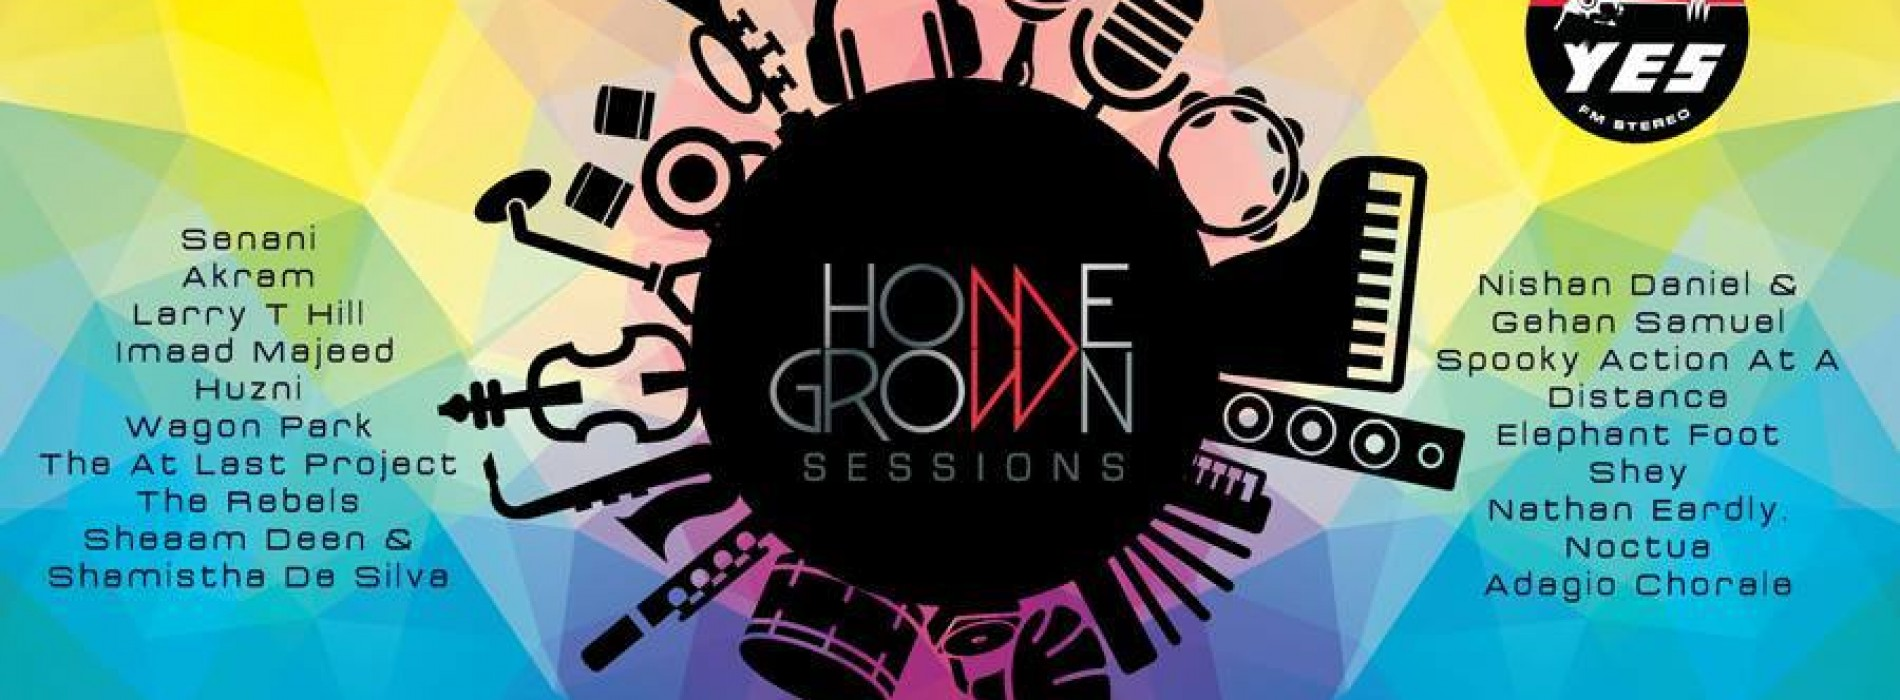 YES Home Grown Sessions (Moments)